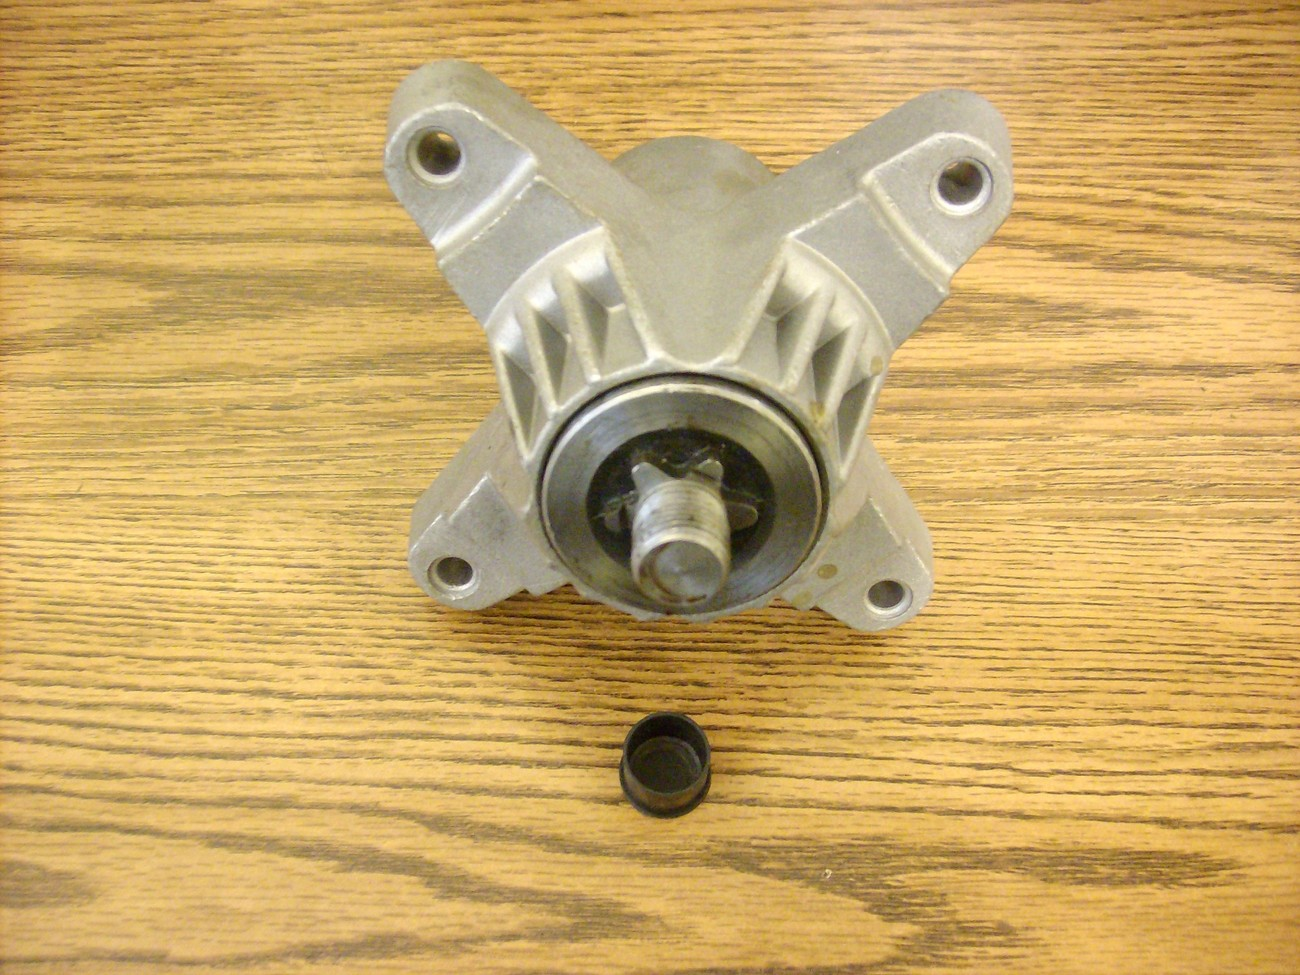 MTD, Troy Bilt, Cub Cadet deck spindle 618-0138 / 618-0142 / 918-0138 / 918-0142